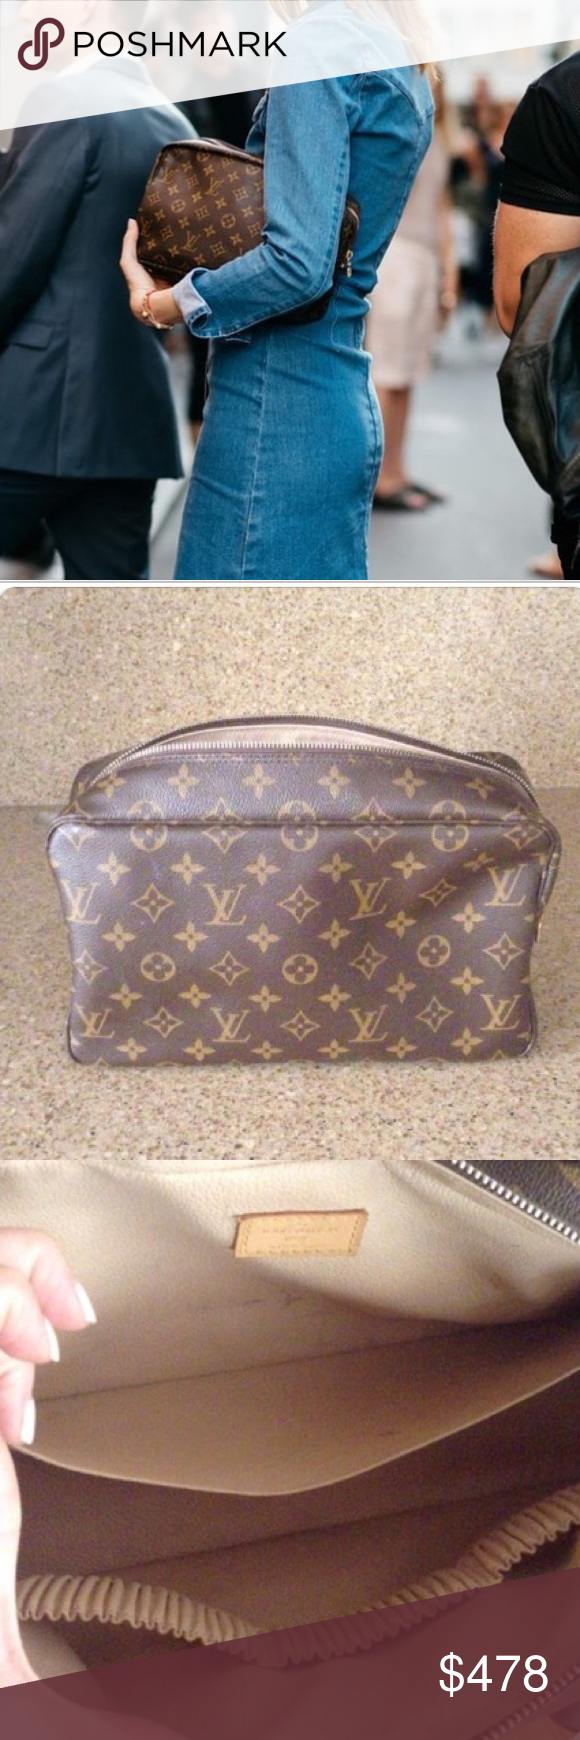 a4a31dce95 Louis Vuitton toiletry pouch GM Authentic LV toiletry pouch in the ...